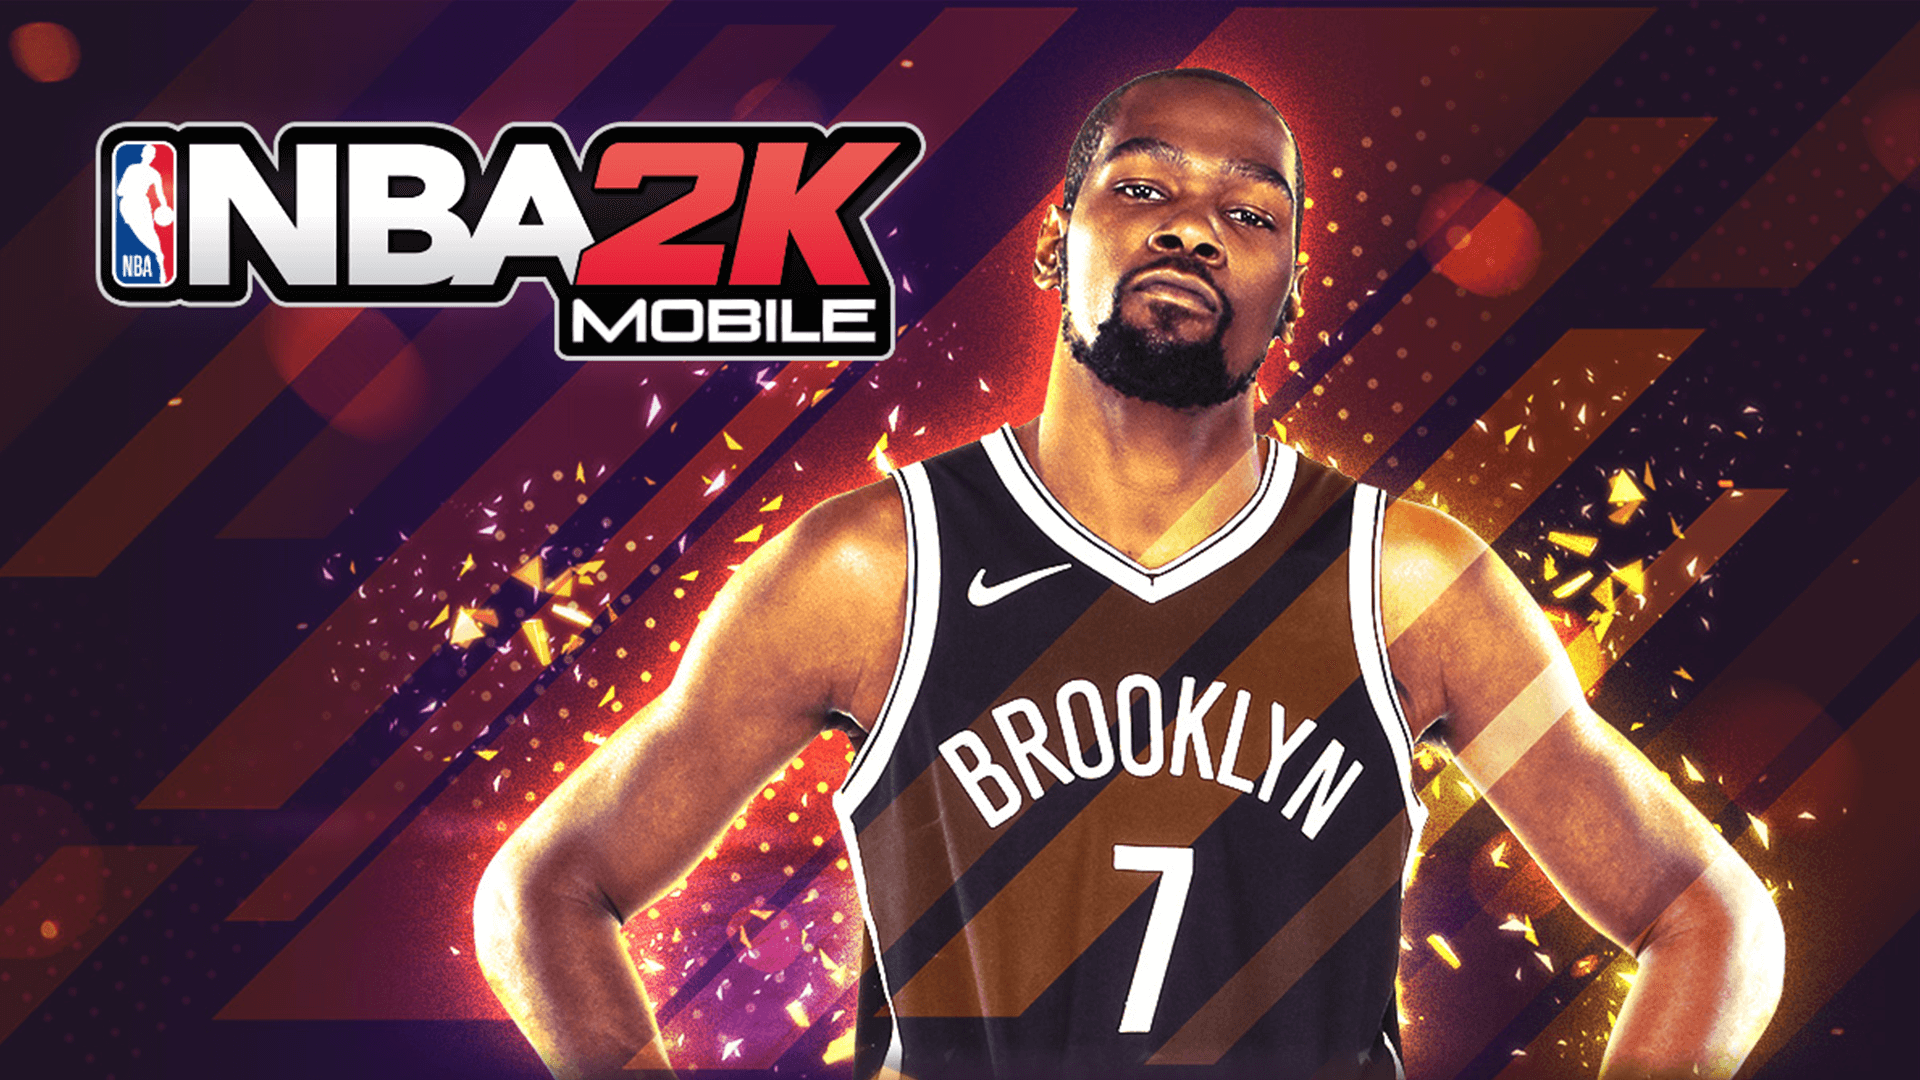 NBA 2K Mobile Partners With Kevin Durant